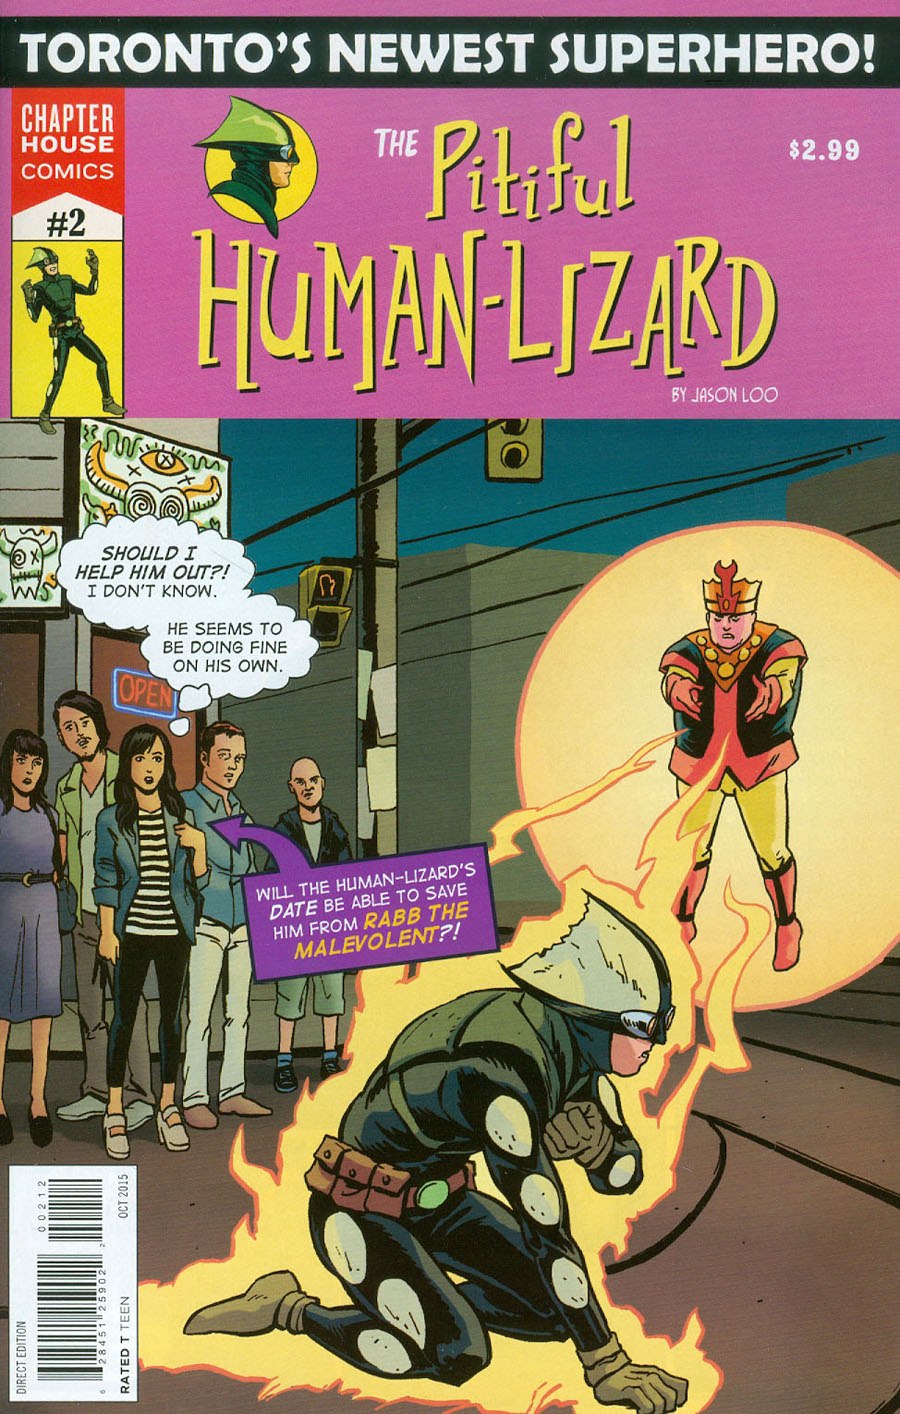 Pitiful Human-Lizard #2